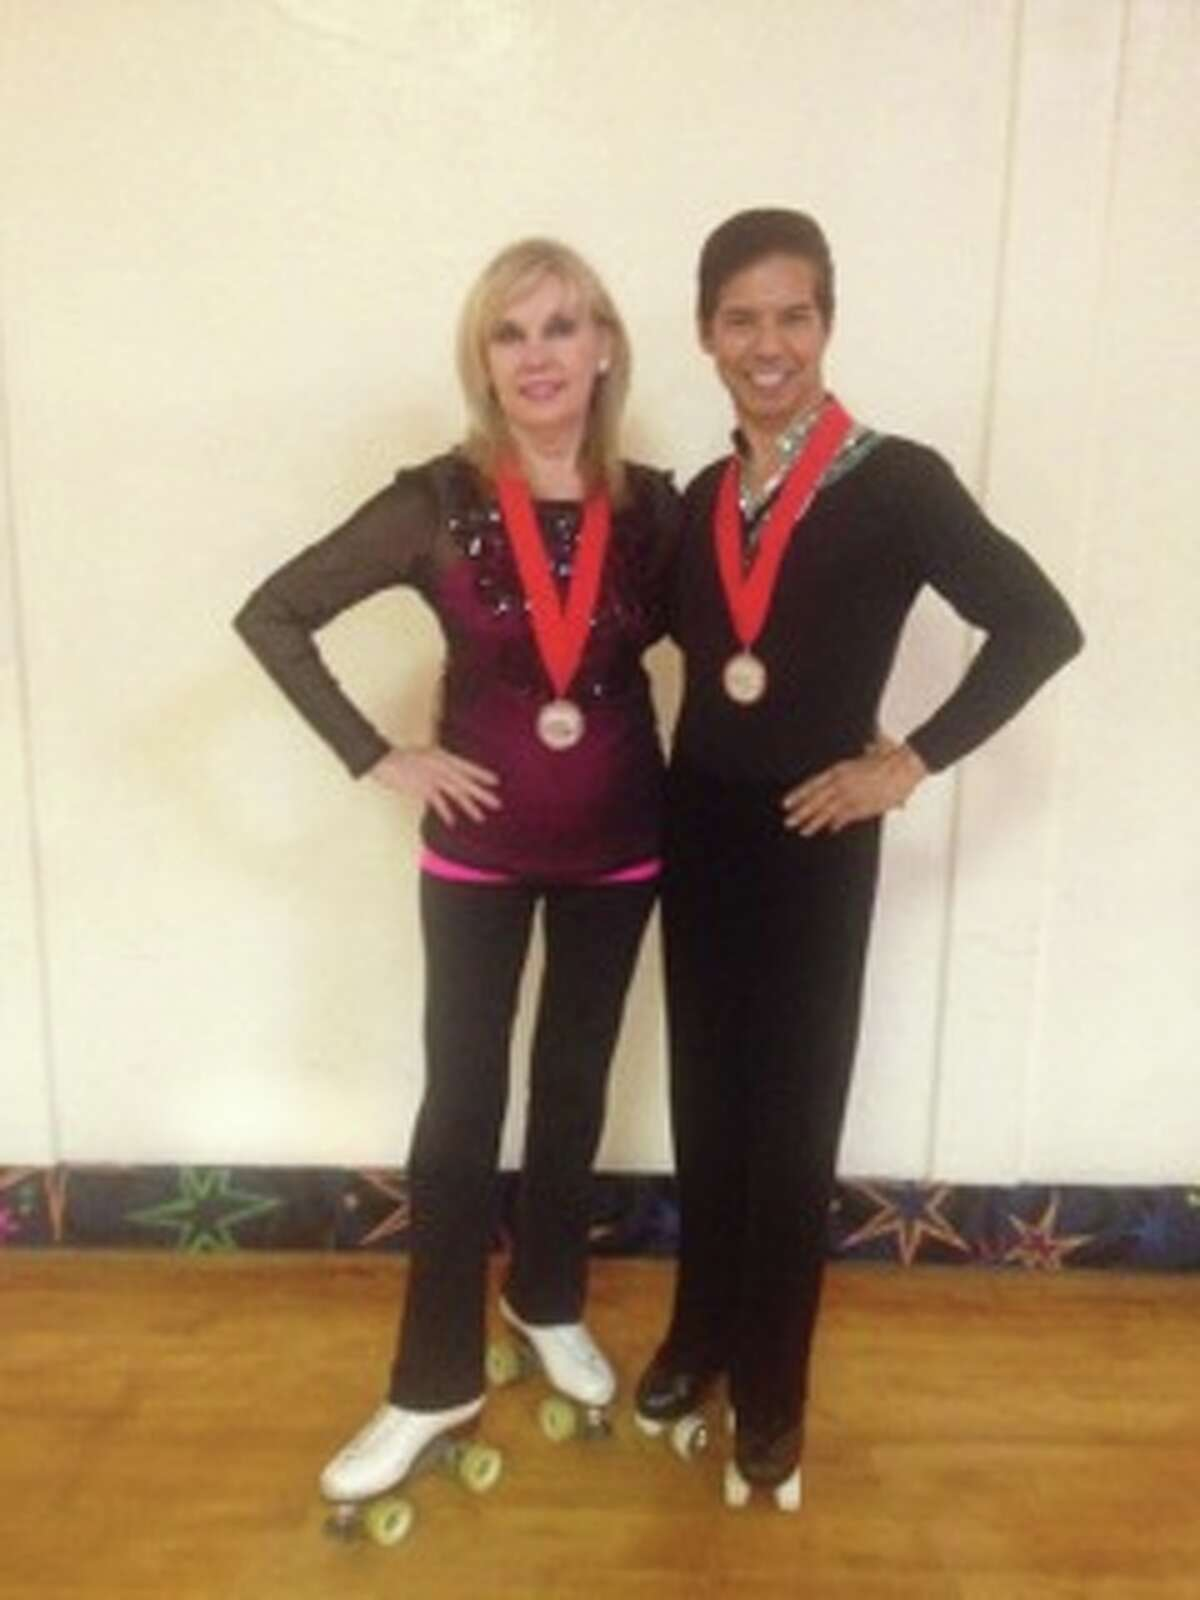 Mykal Pedraza (right) became the oldest person to win a gold medal in a U.S. roller skating free style event in August 2014 at age 56.